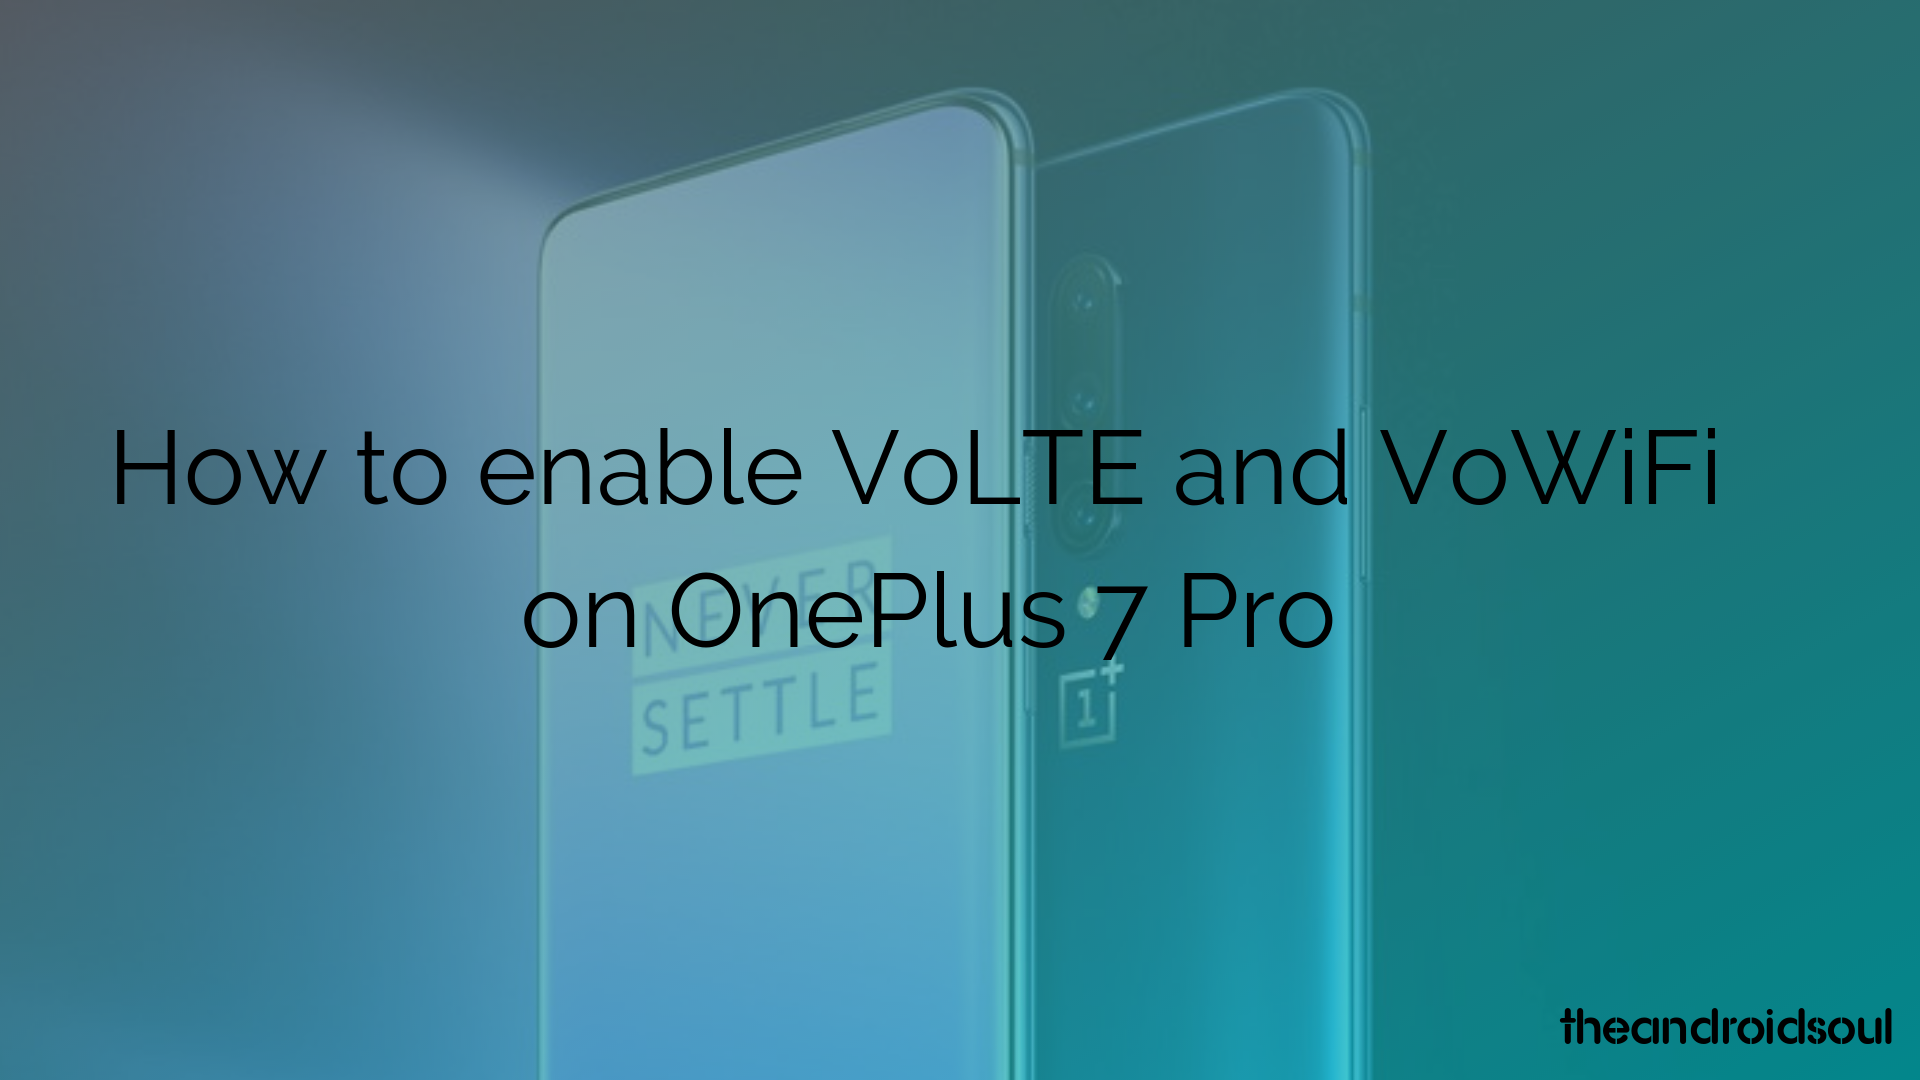 OnePlus 7 Pro VoLTE and VoWiFi